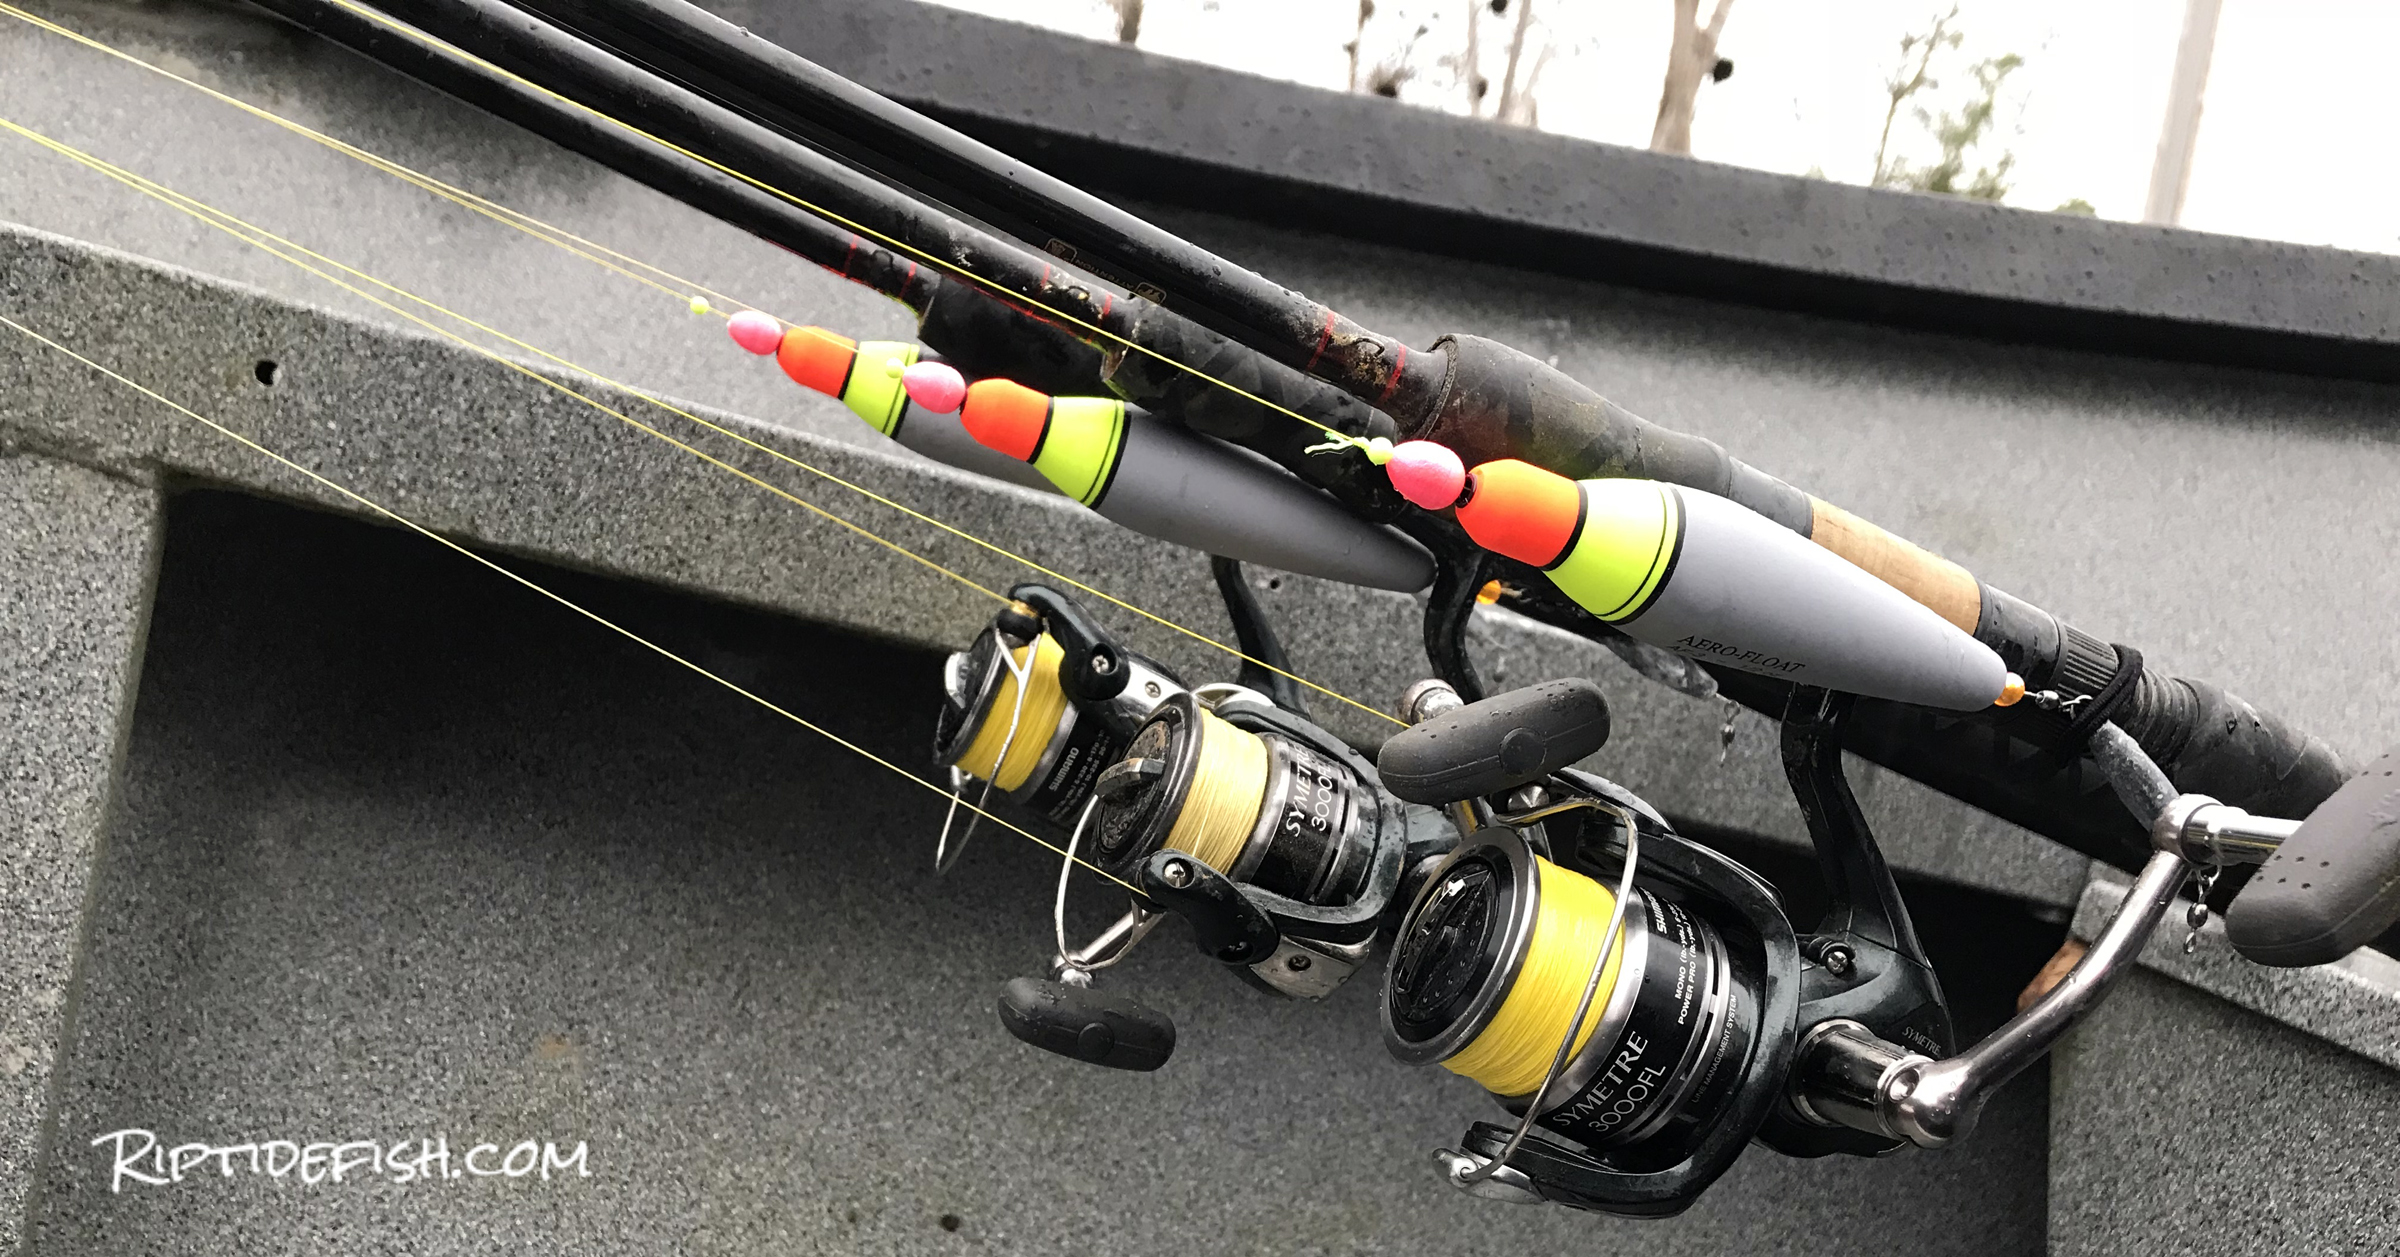 I use 9' spinning rods for Steelhead float fishing from my drift boat.